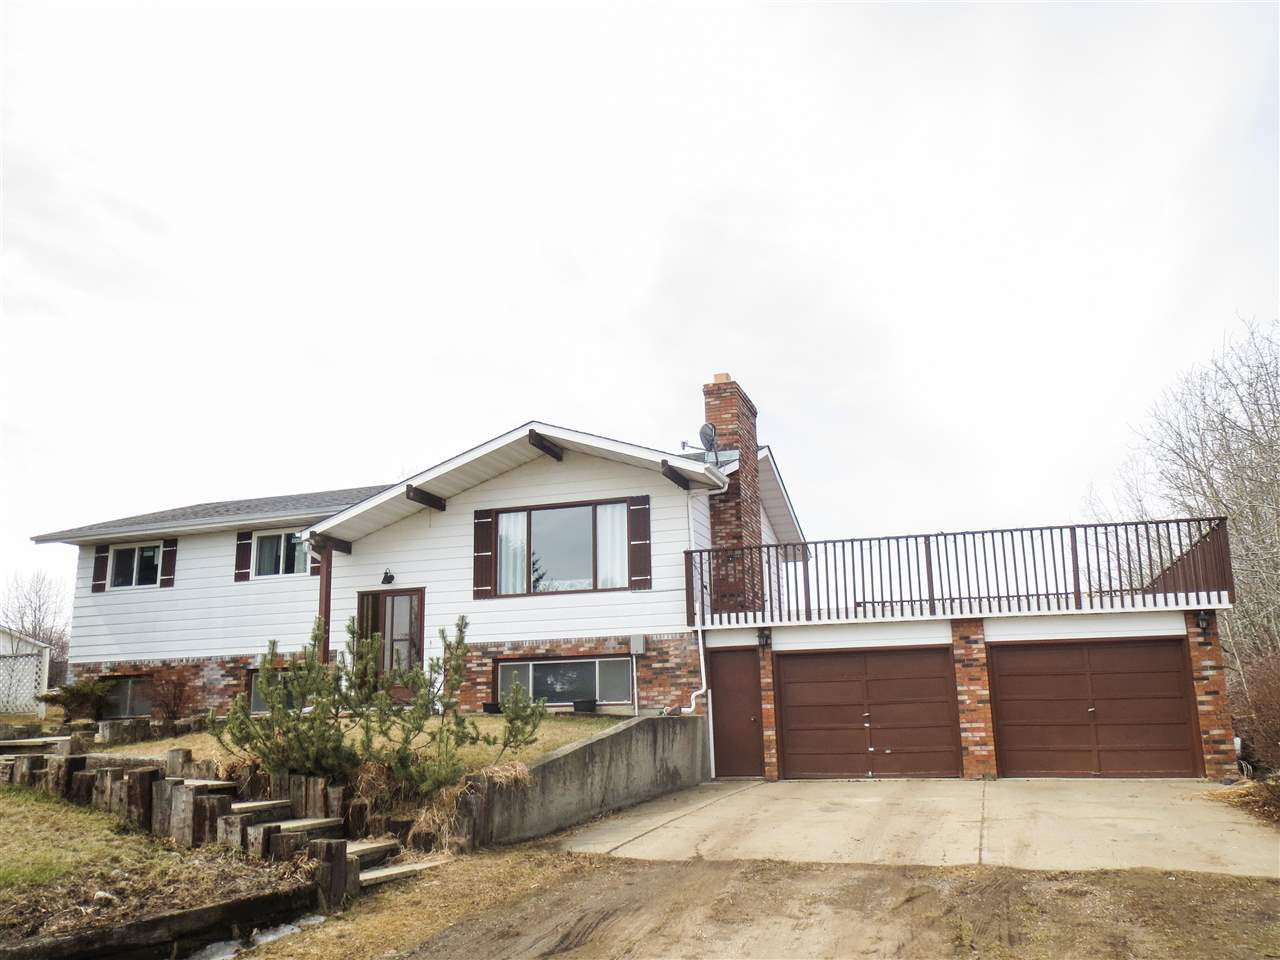 158 23020 Twp Rd 522, 5 bed, 2.1 bath, at $589,900